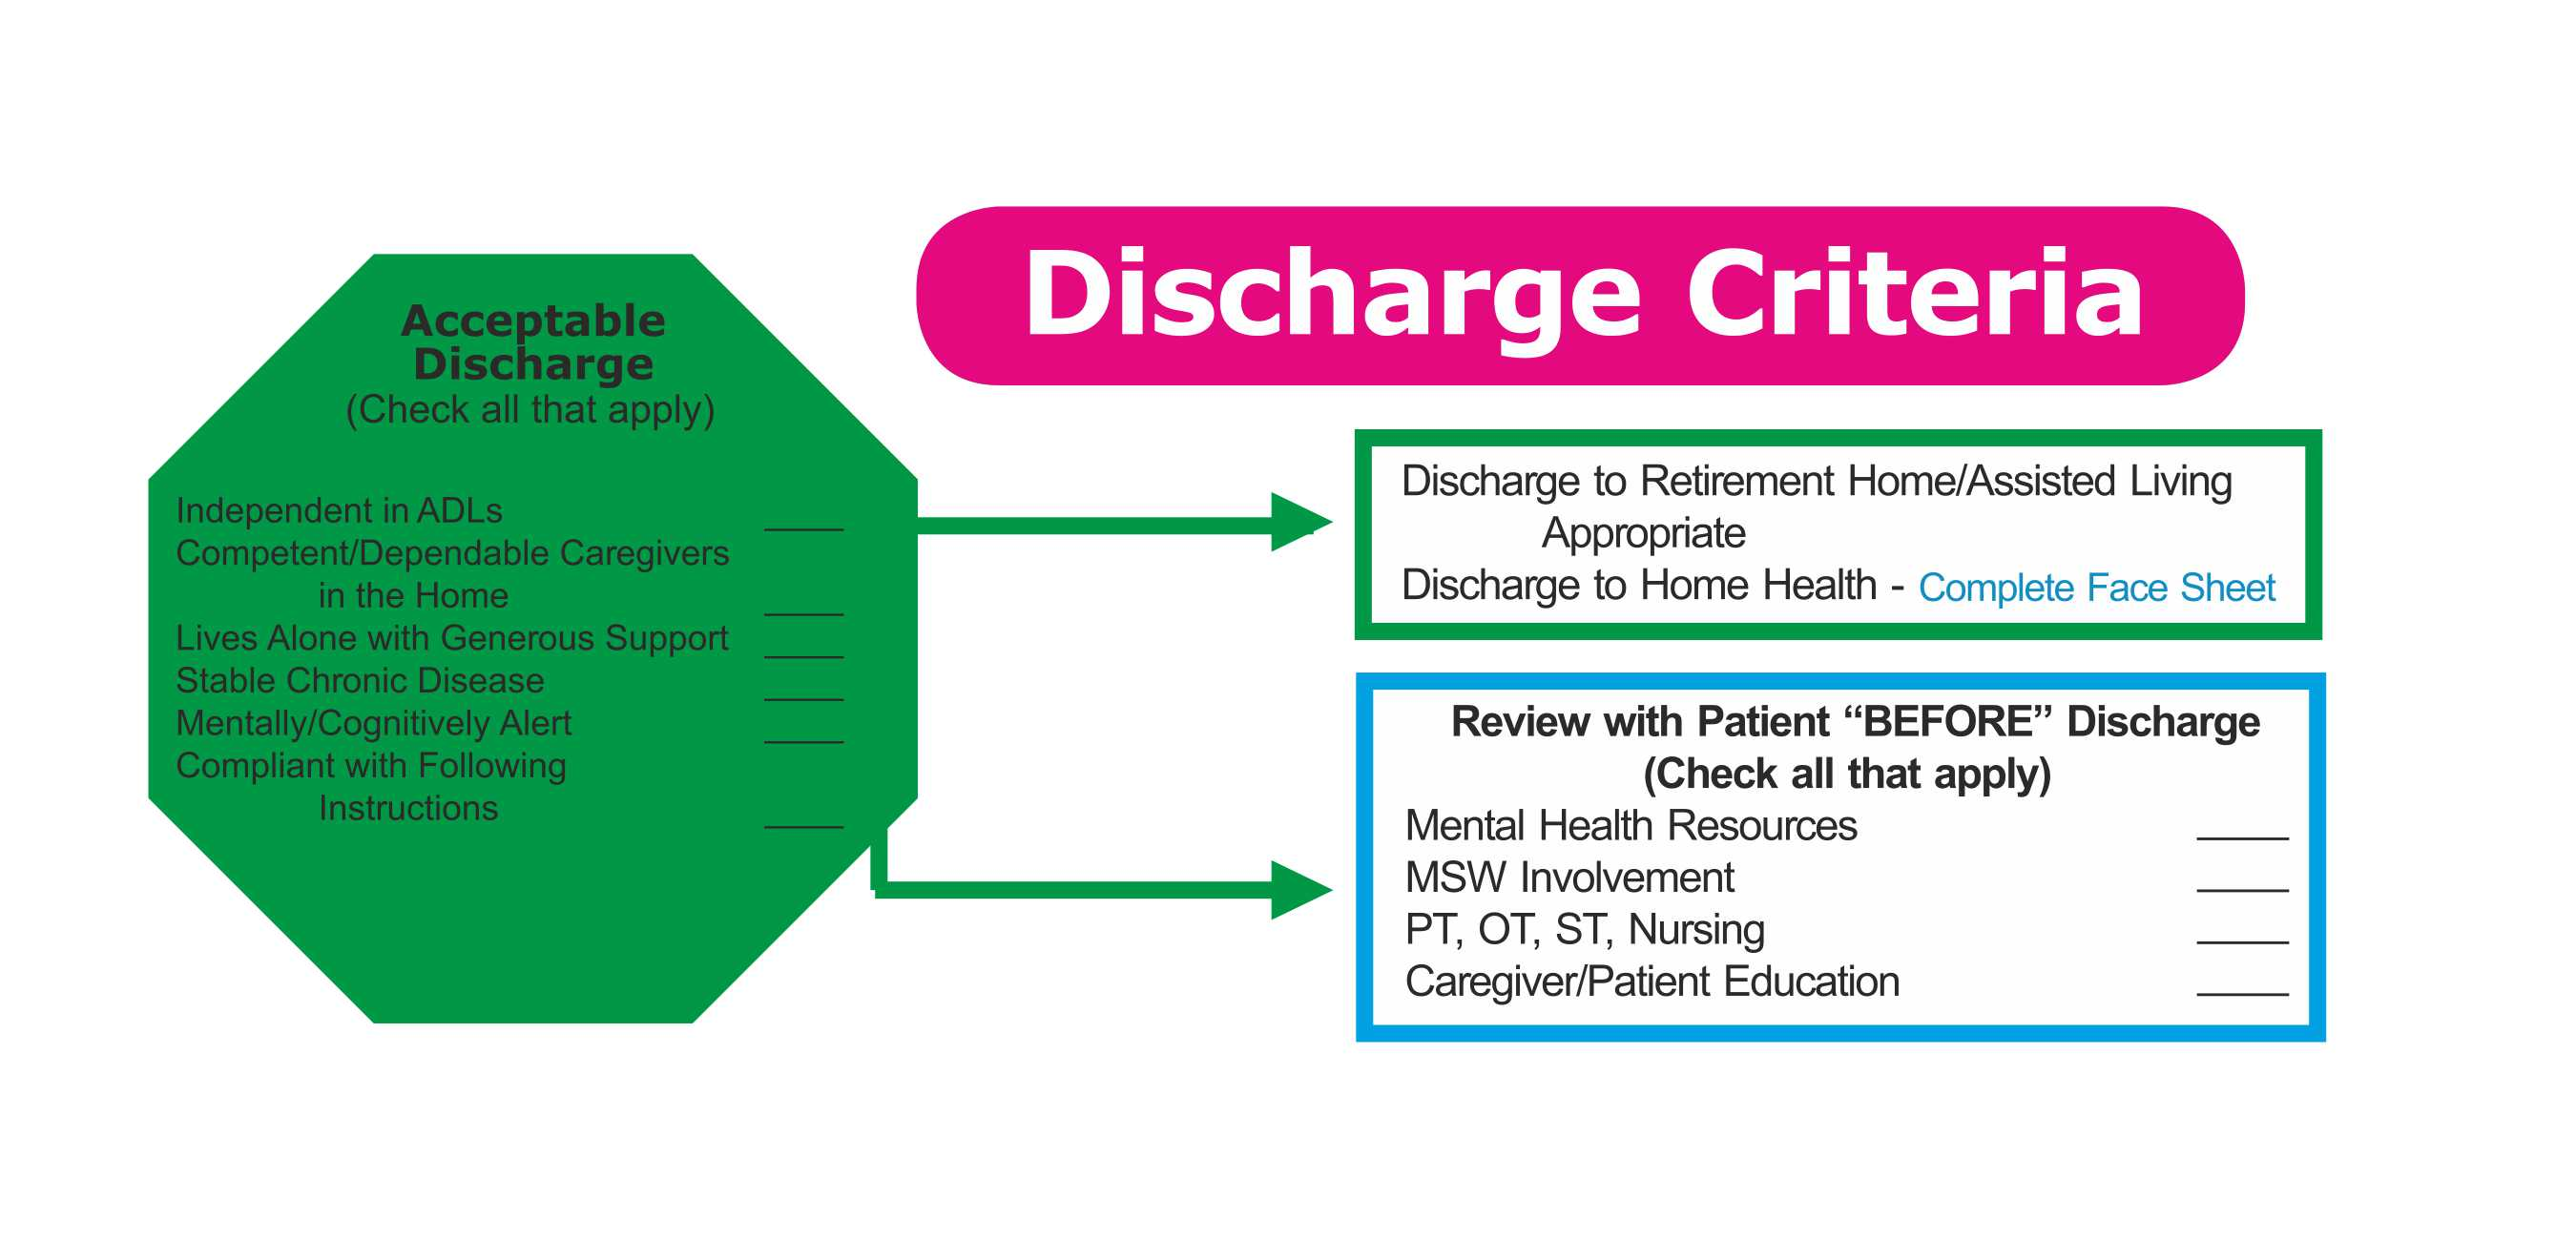 Discharge Criteria Tips for Hospitals